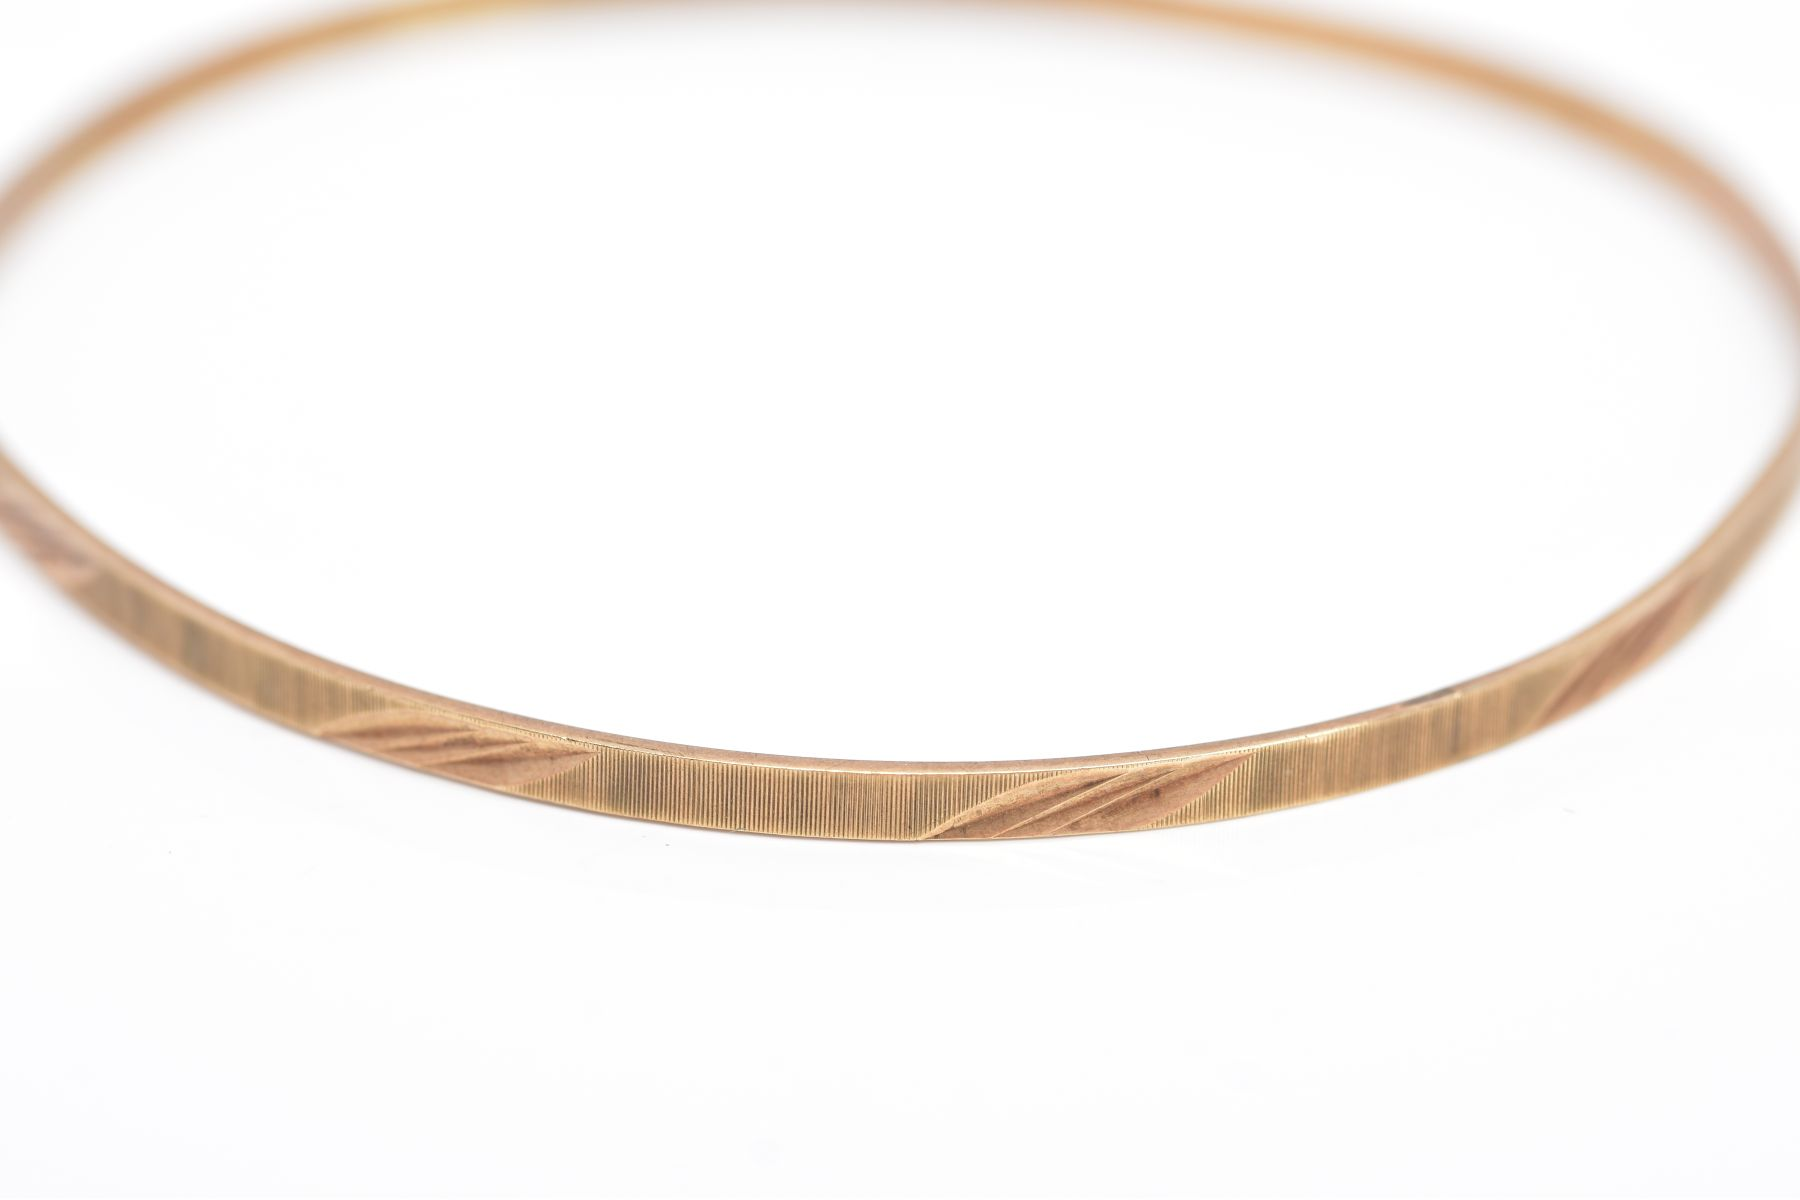 A 9CT GOLD BANGLE, thin bangle with a textured and foliate engraved design, hallmarked 9ct gold - Image 2 of 3